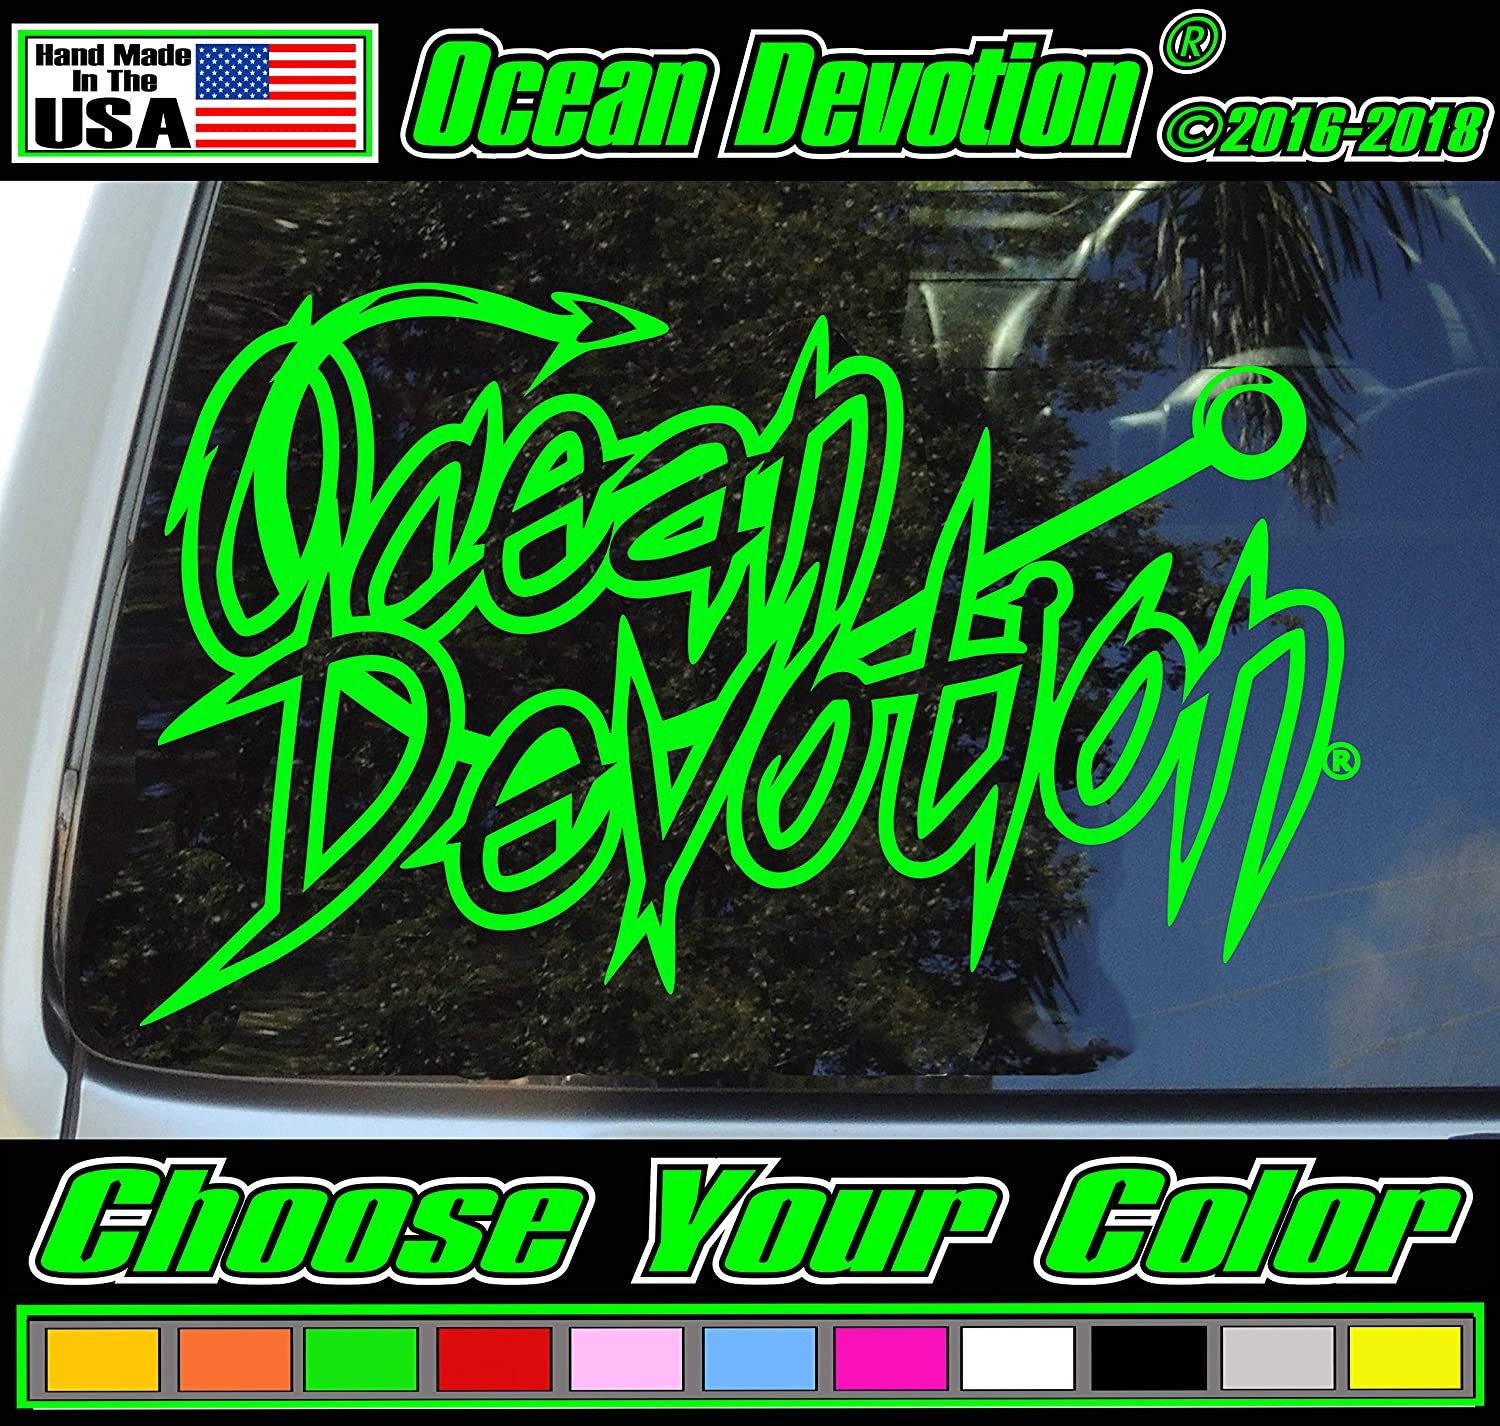 "Fishing Hook ""Ocean Devotion"" Vinyl Decal/Sticker V2 - 8w x 5h inches - Keywords... Sea Life, Surf, Surfing, Fishing, Automobile, Salt Life, Reel Life, Beach Life, Car, Truck, Boat, Window"